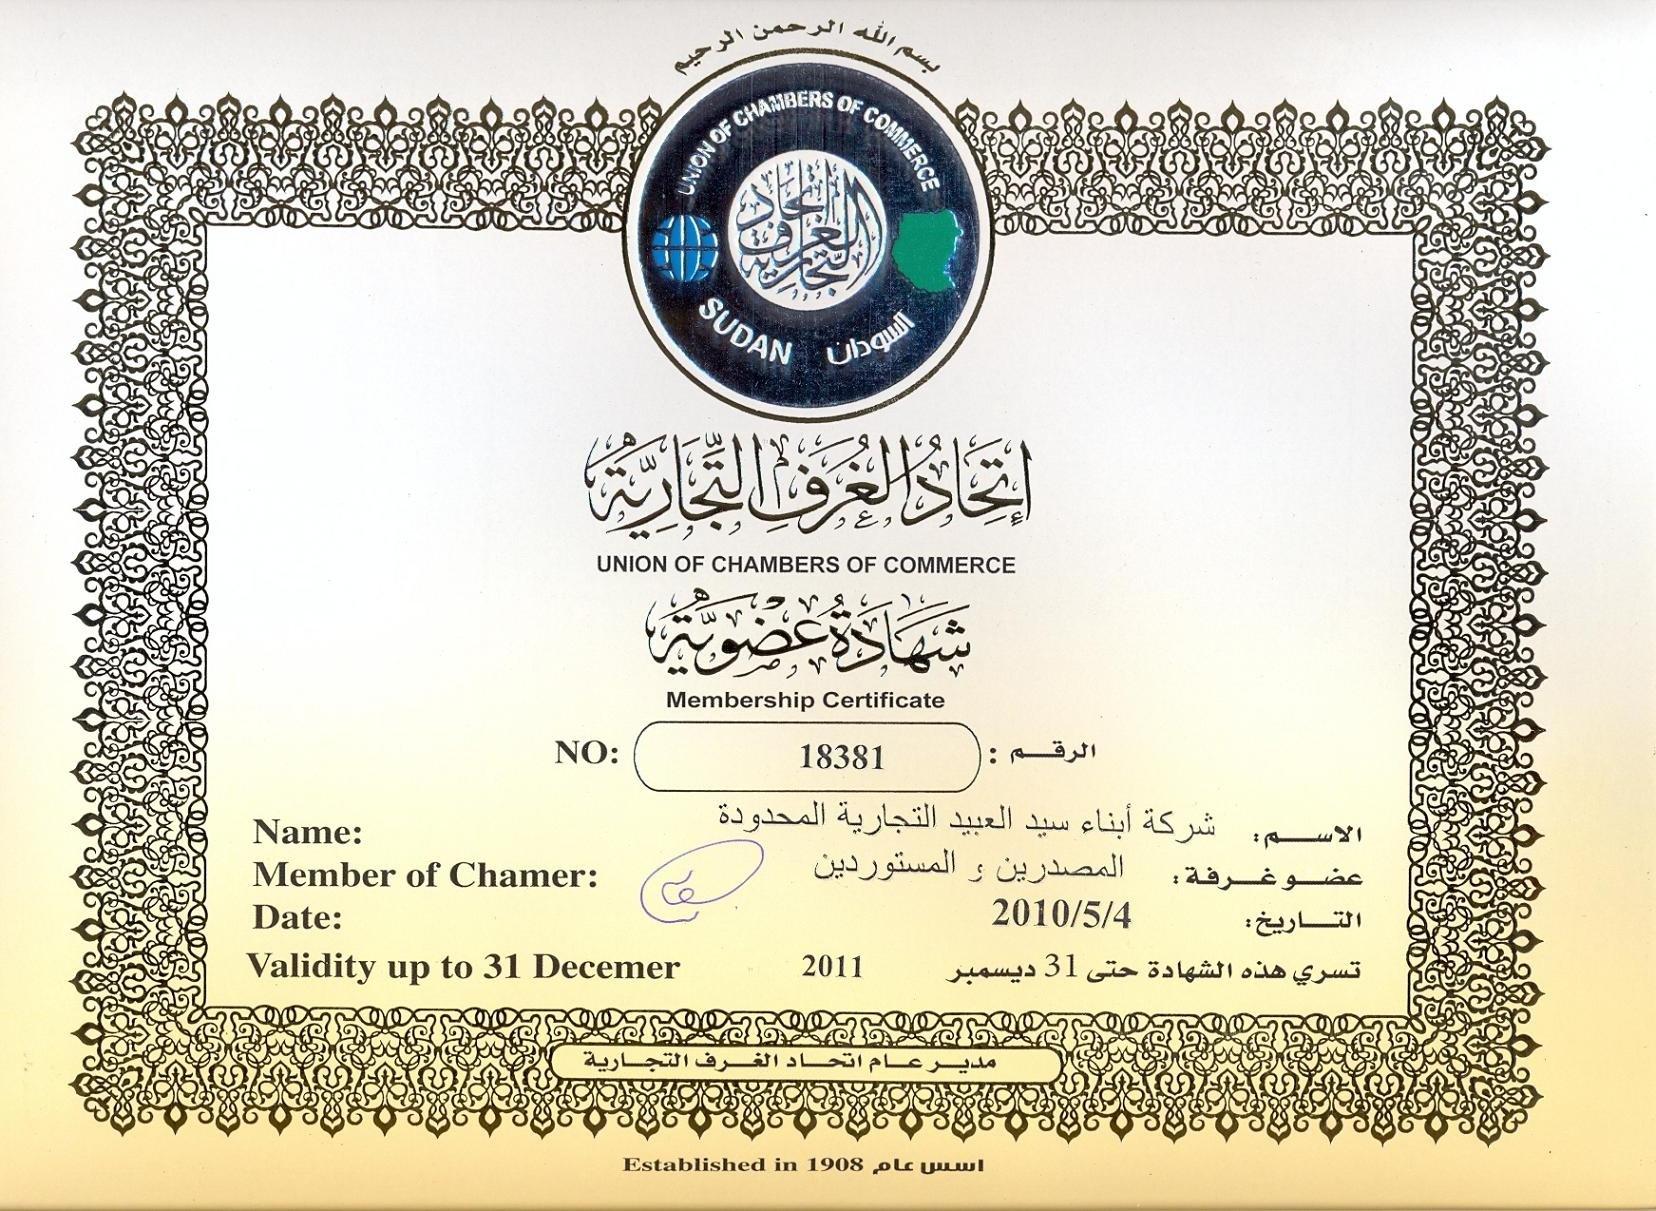 Membeship Certificate - Union of Chamber of commerce (SUDAN)